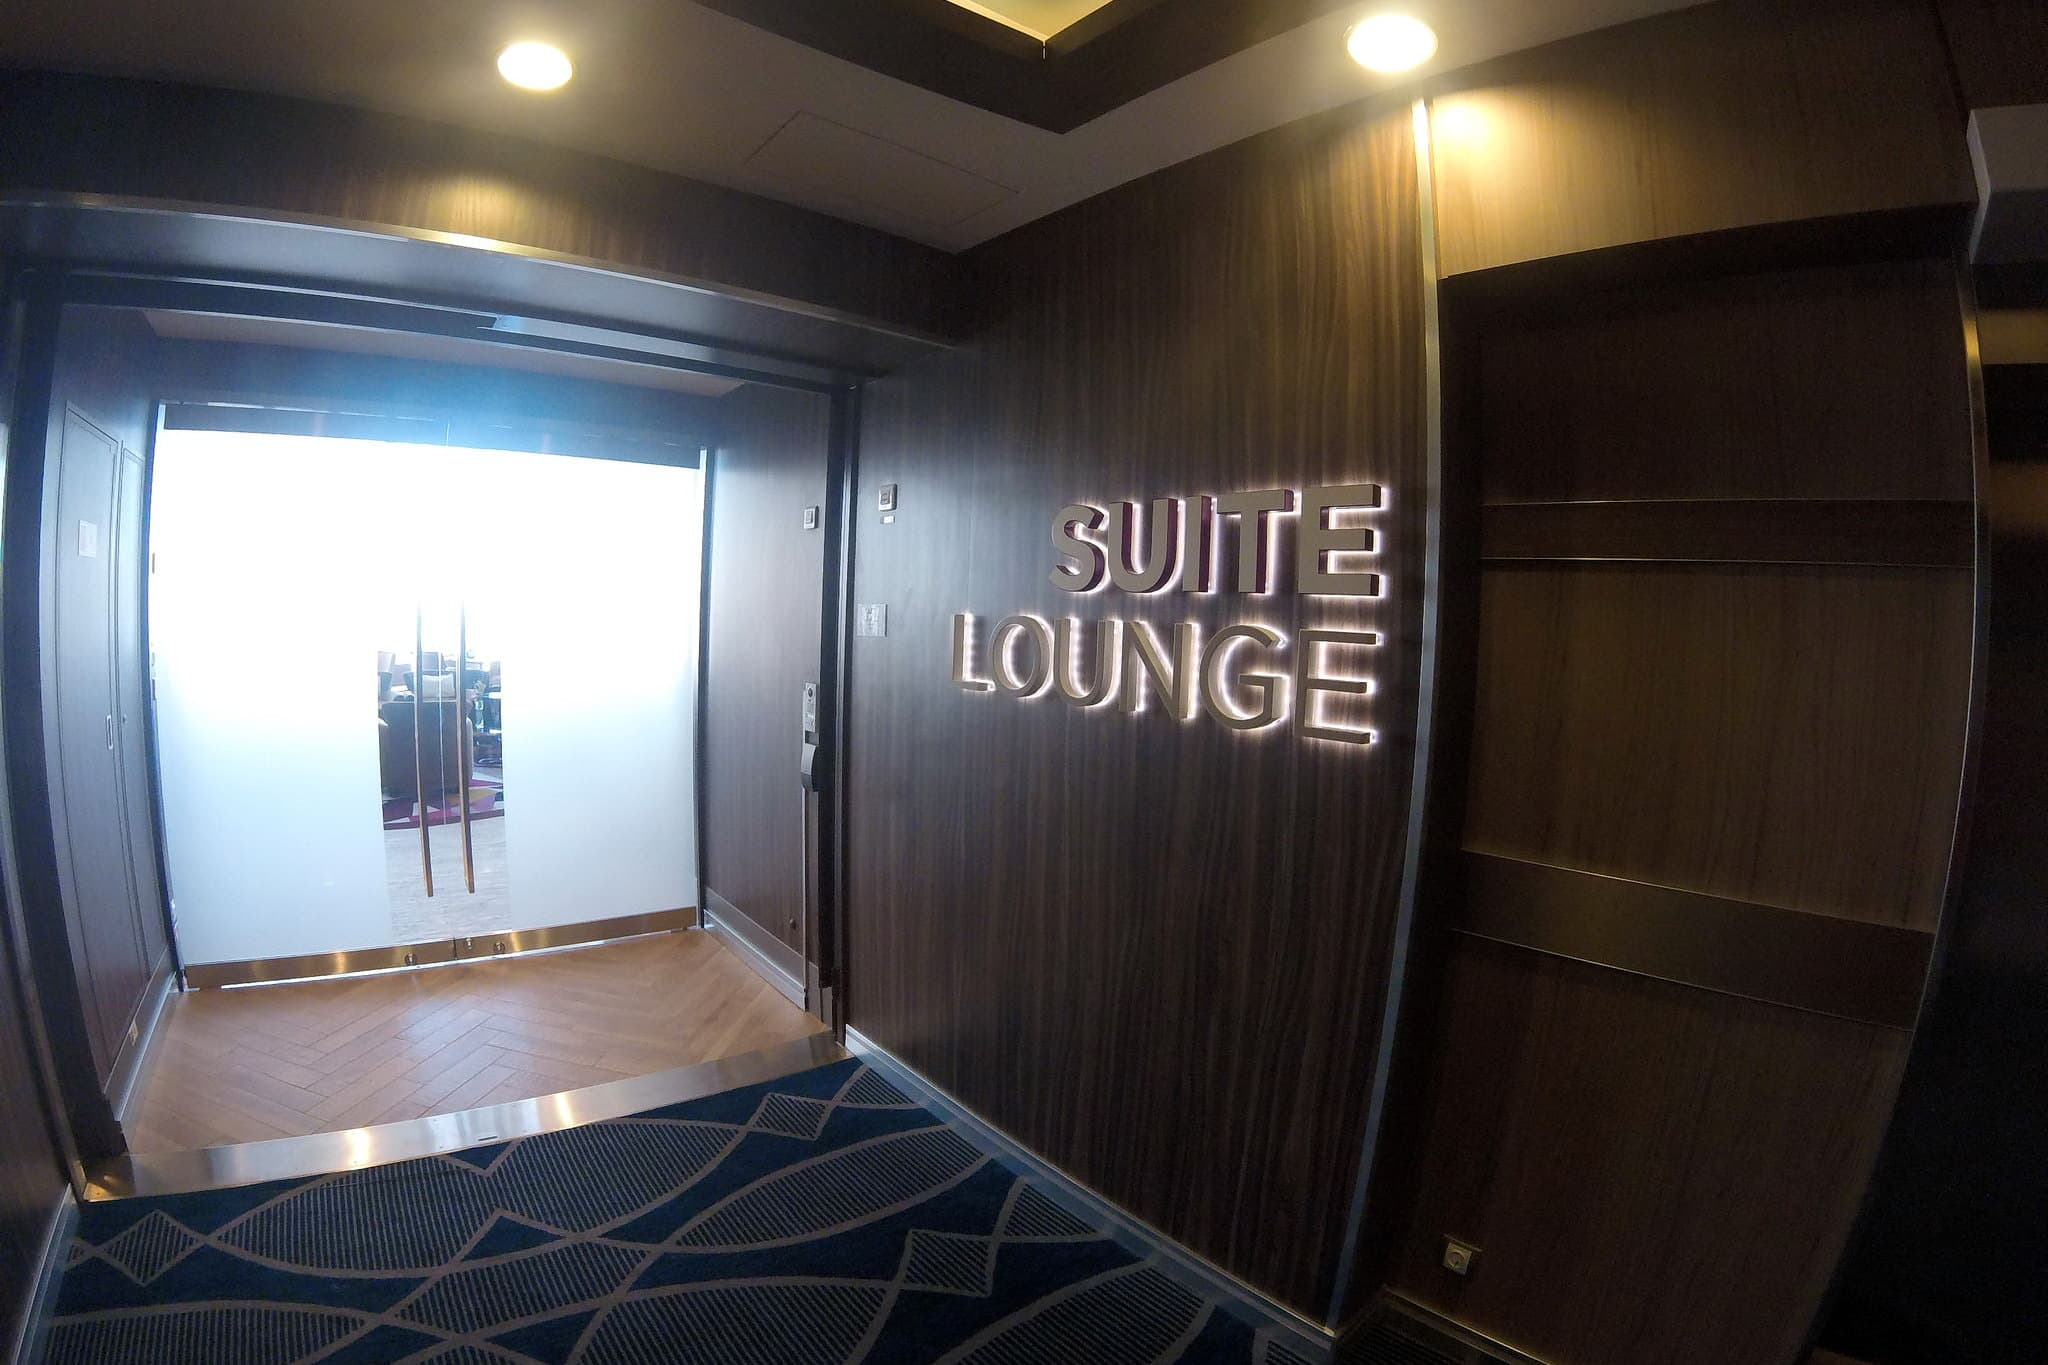 Harmony of the seas_Royal Family Suite_1722-24